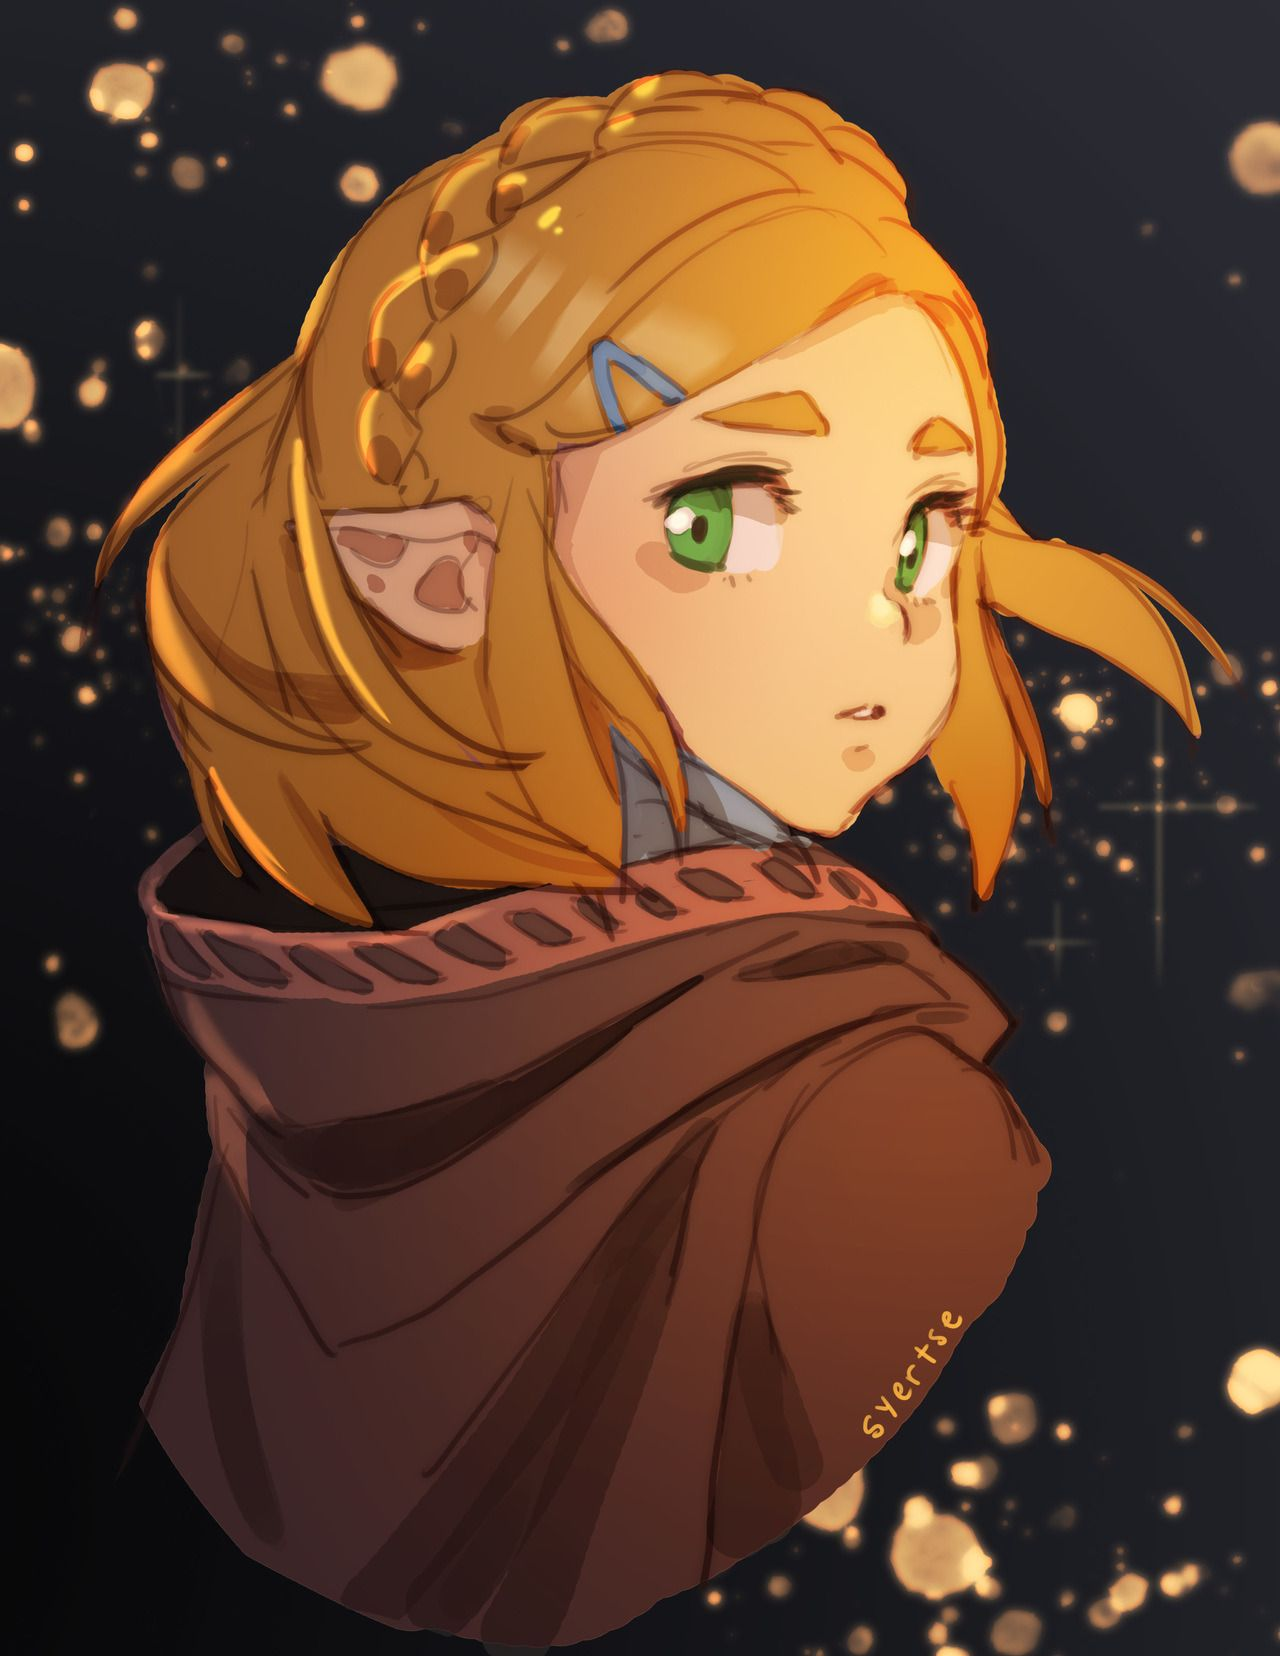 The Zelda Botw Sequel Caught Me By Surprise I Cant Wait To See Short Hair Zelda In Action Legend Of Zelda Legend Of Zelda Breath Legend